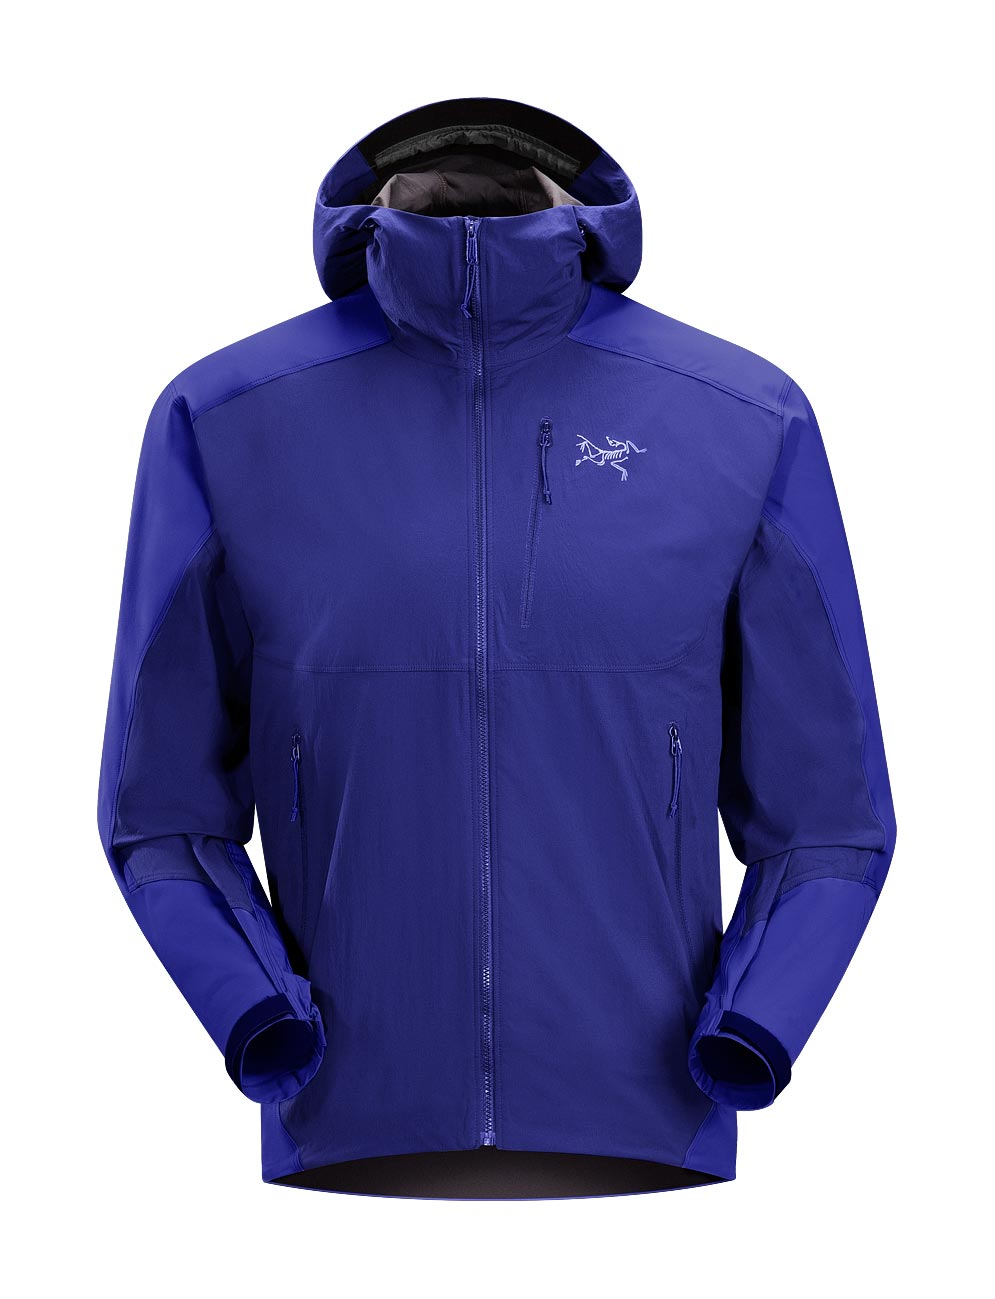 Arcteryx Jackets Men Squid Ink Gamma SL Hybrid Hoody - New